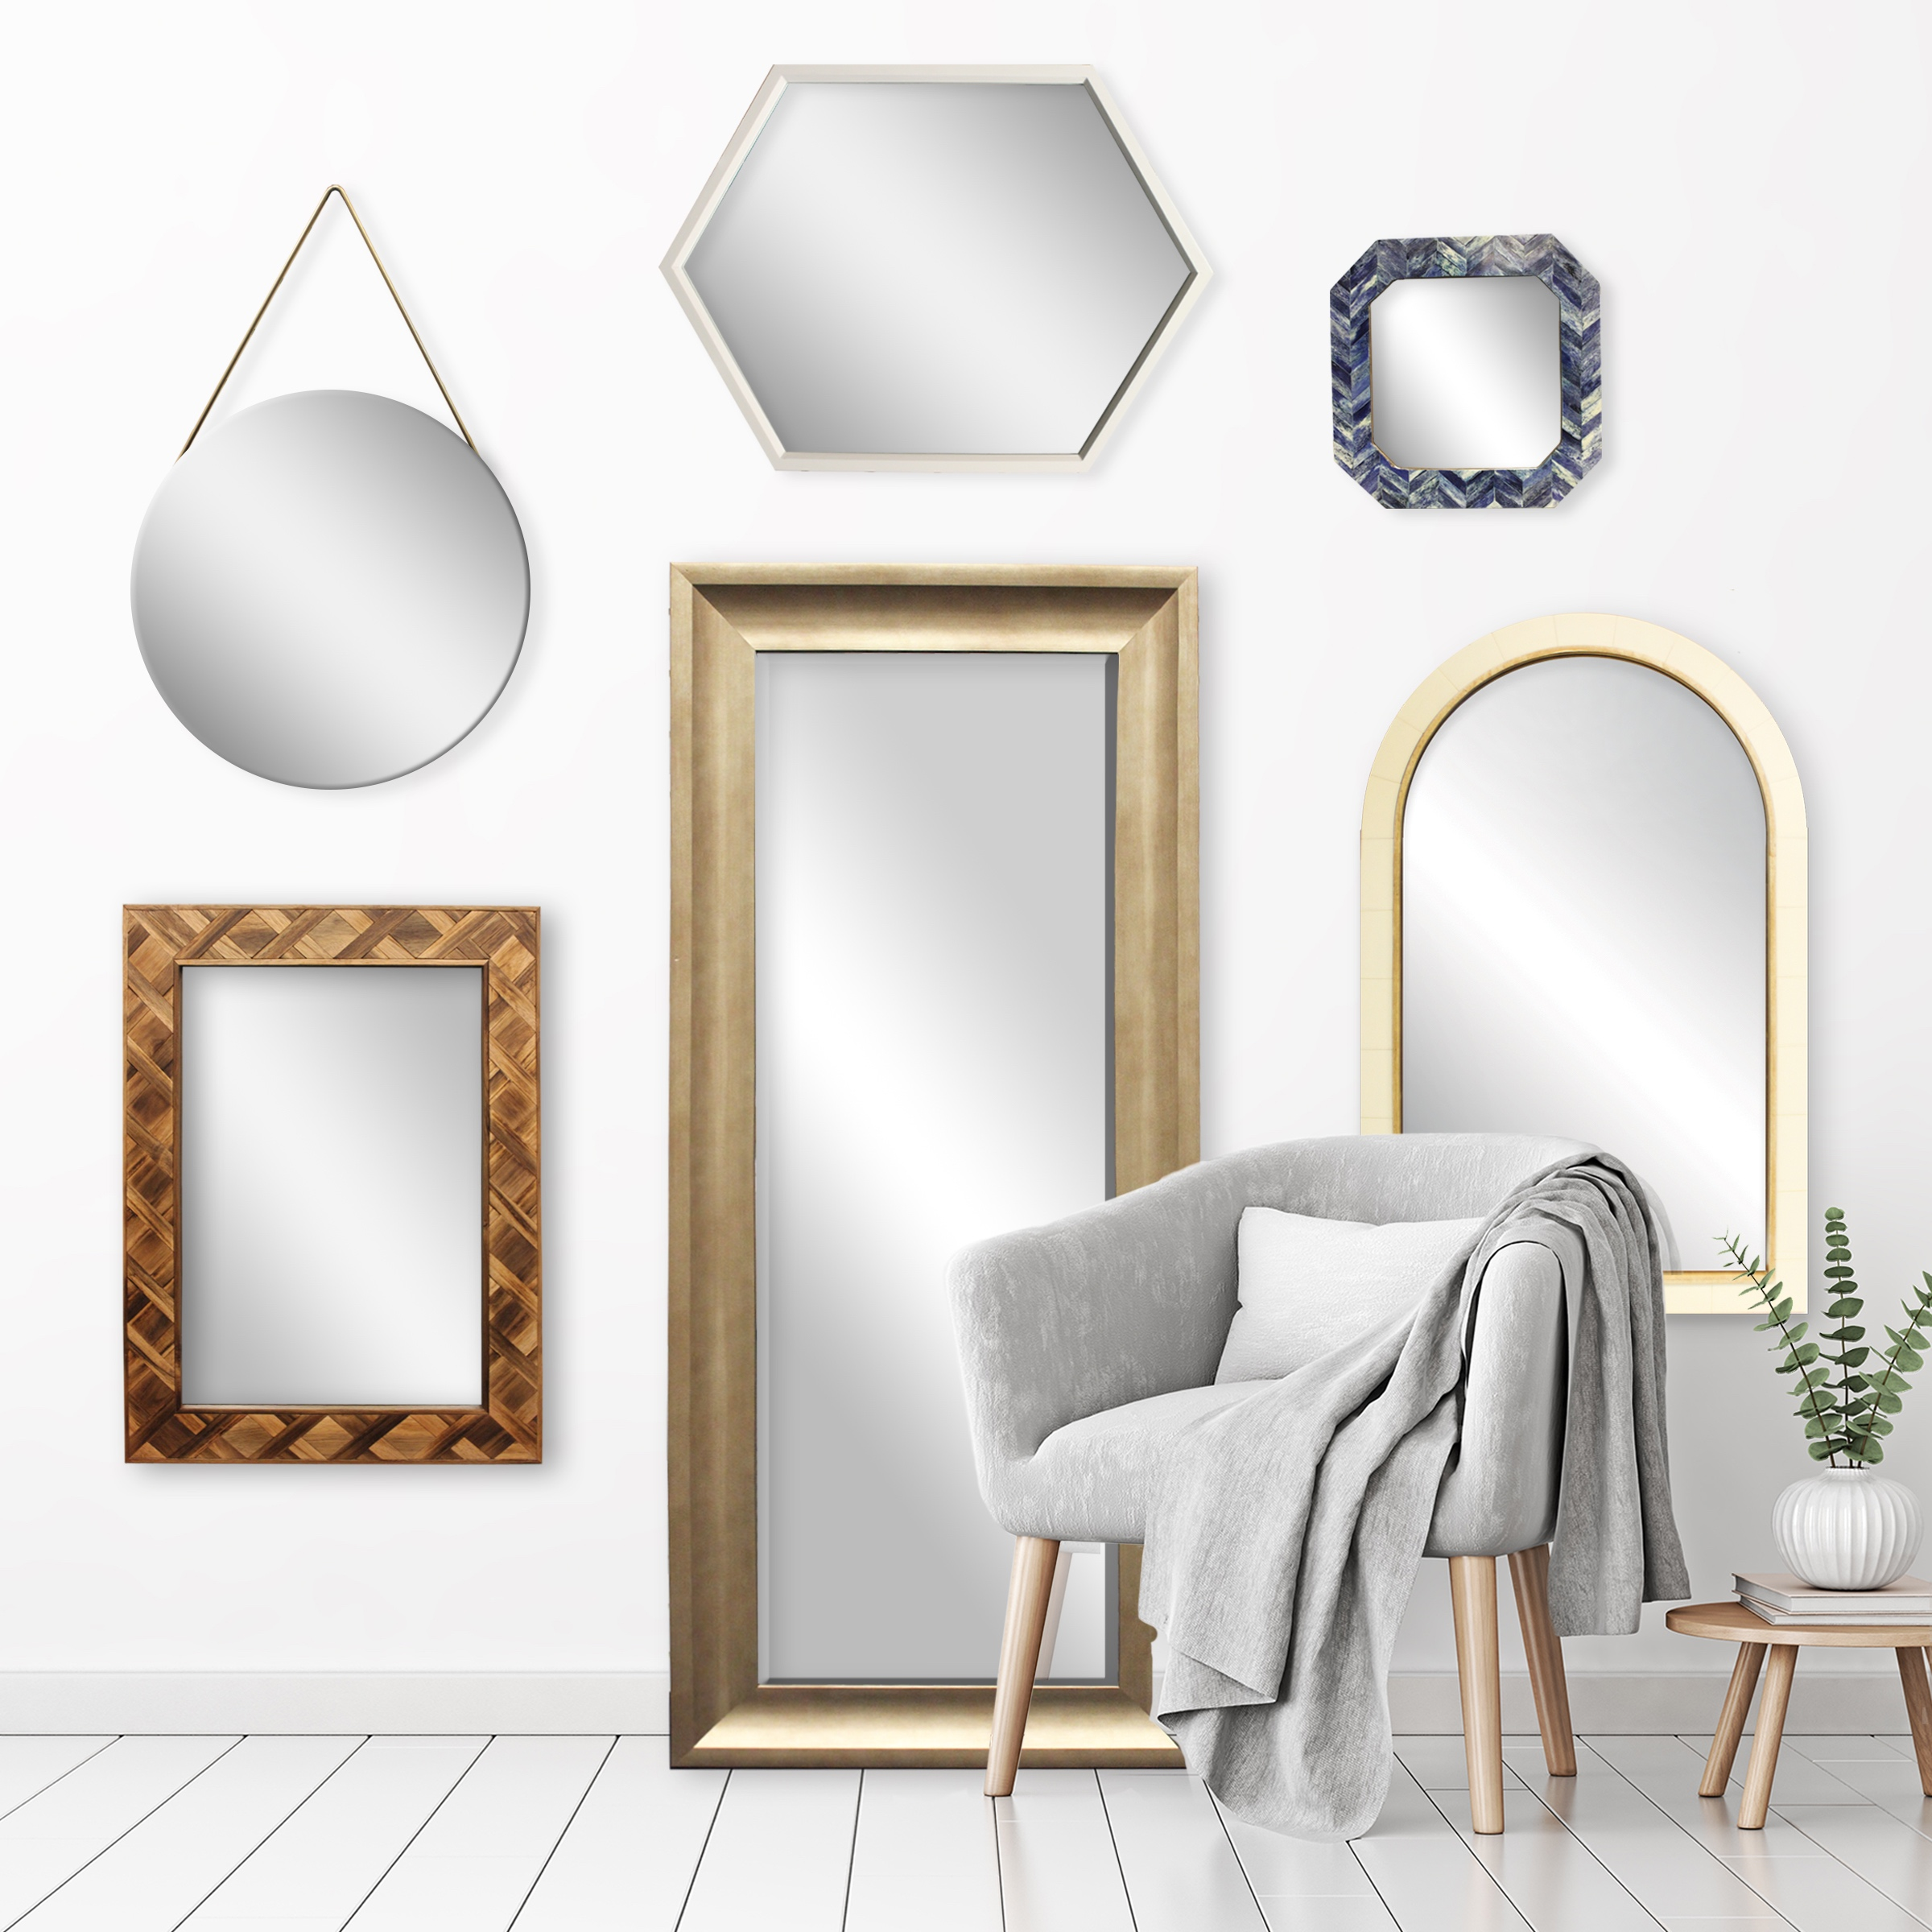 Mirrors - Oversized to decorative and handcrafted collections.